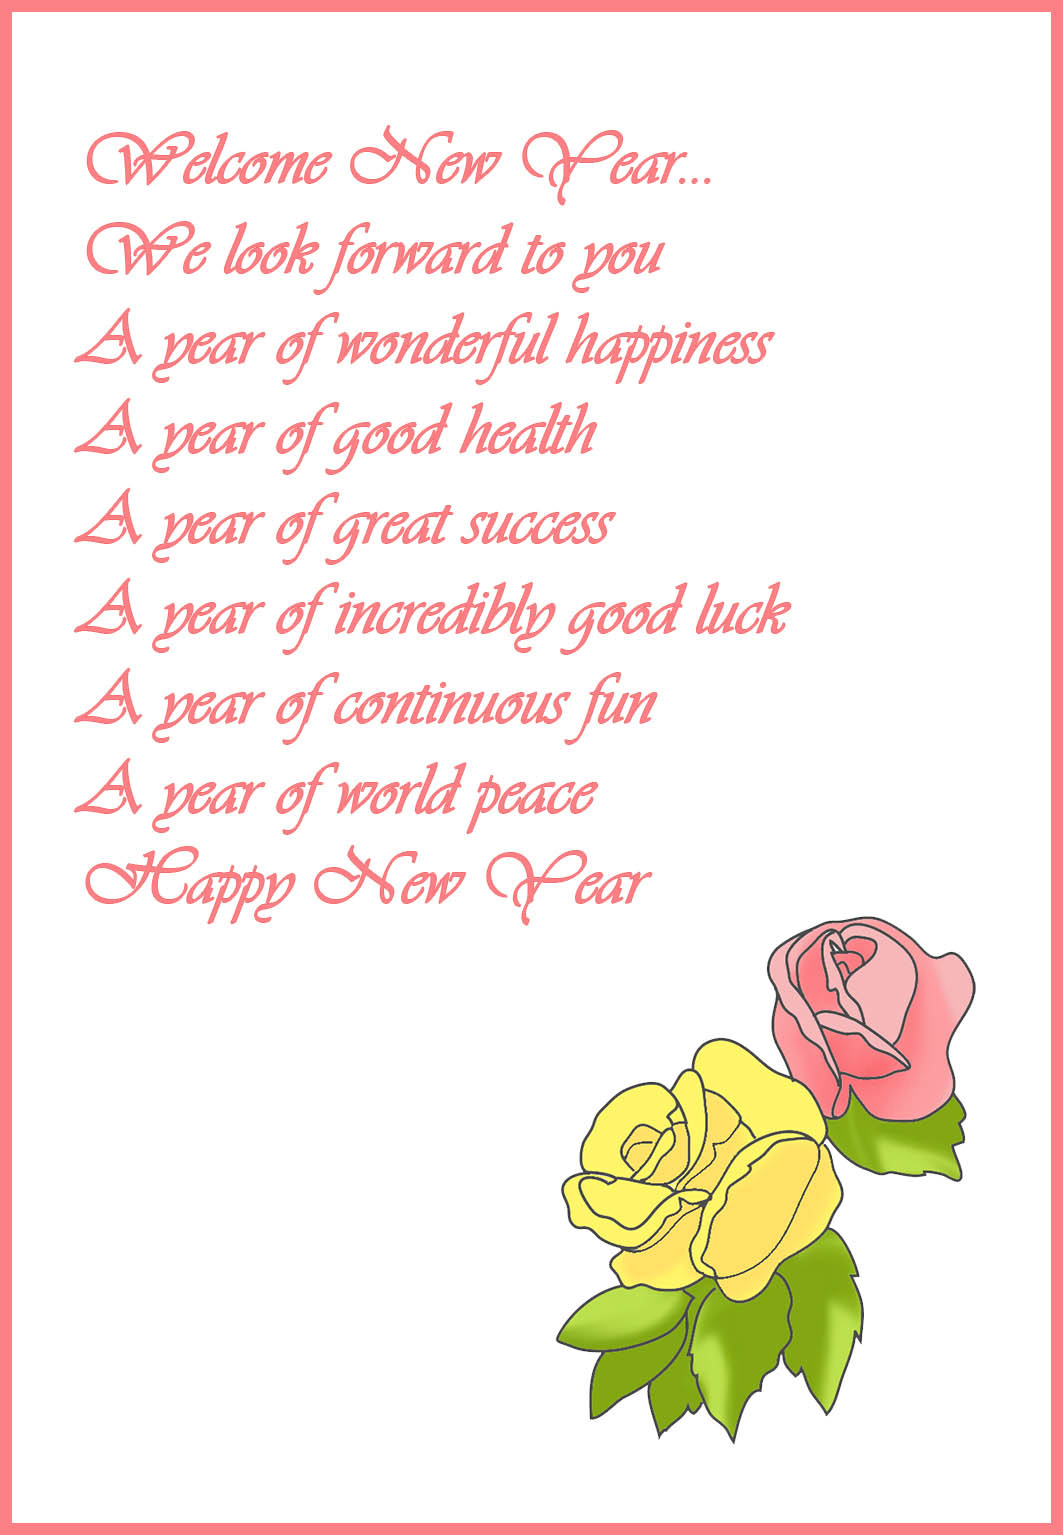 New Year card with poem